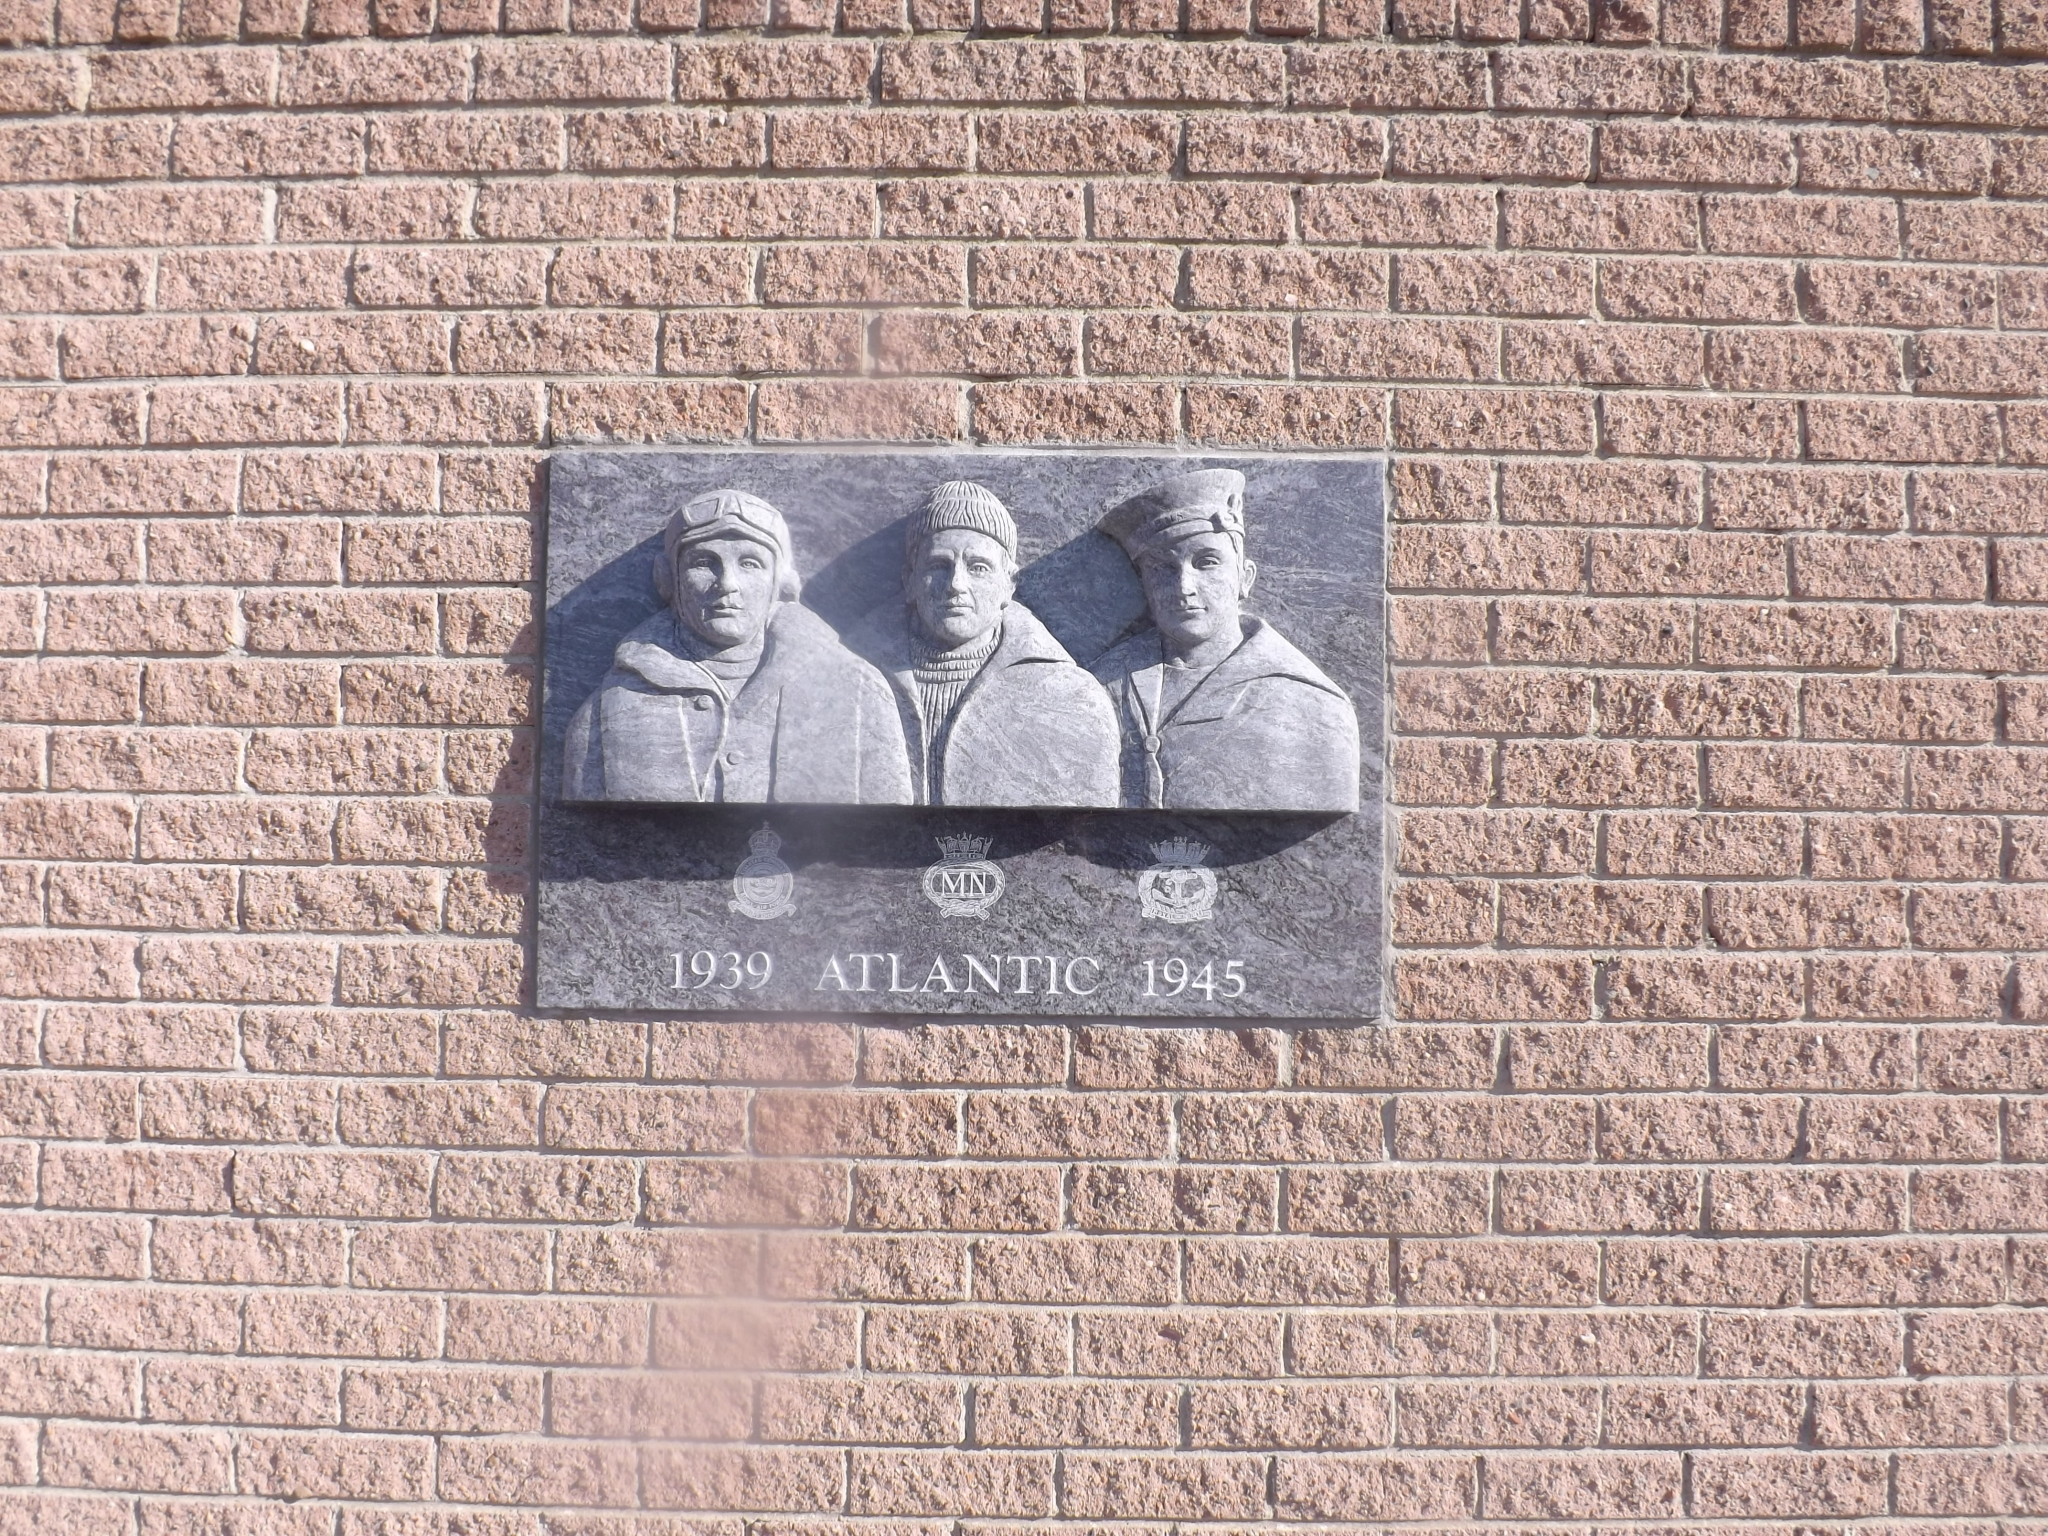 Memorial to the RN, RAF and MN that served in the Atlantic 1939-1945 -  Taken by Ray Spence 30 Sep 2015